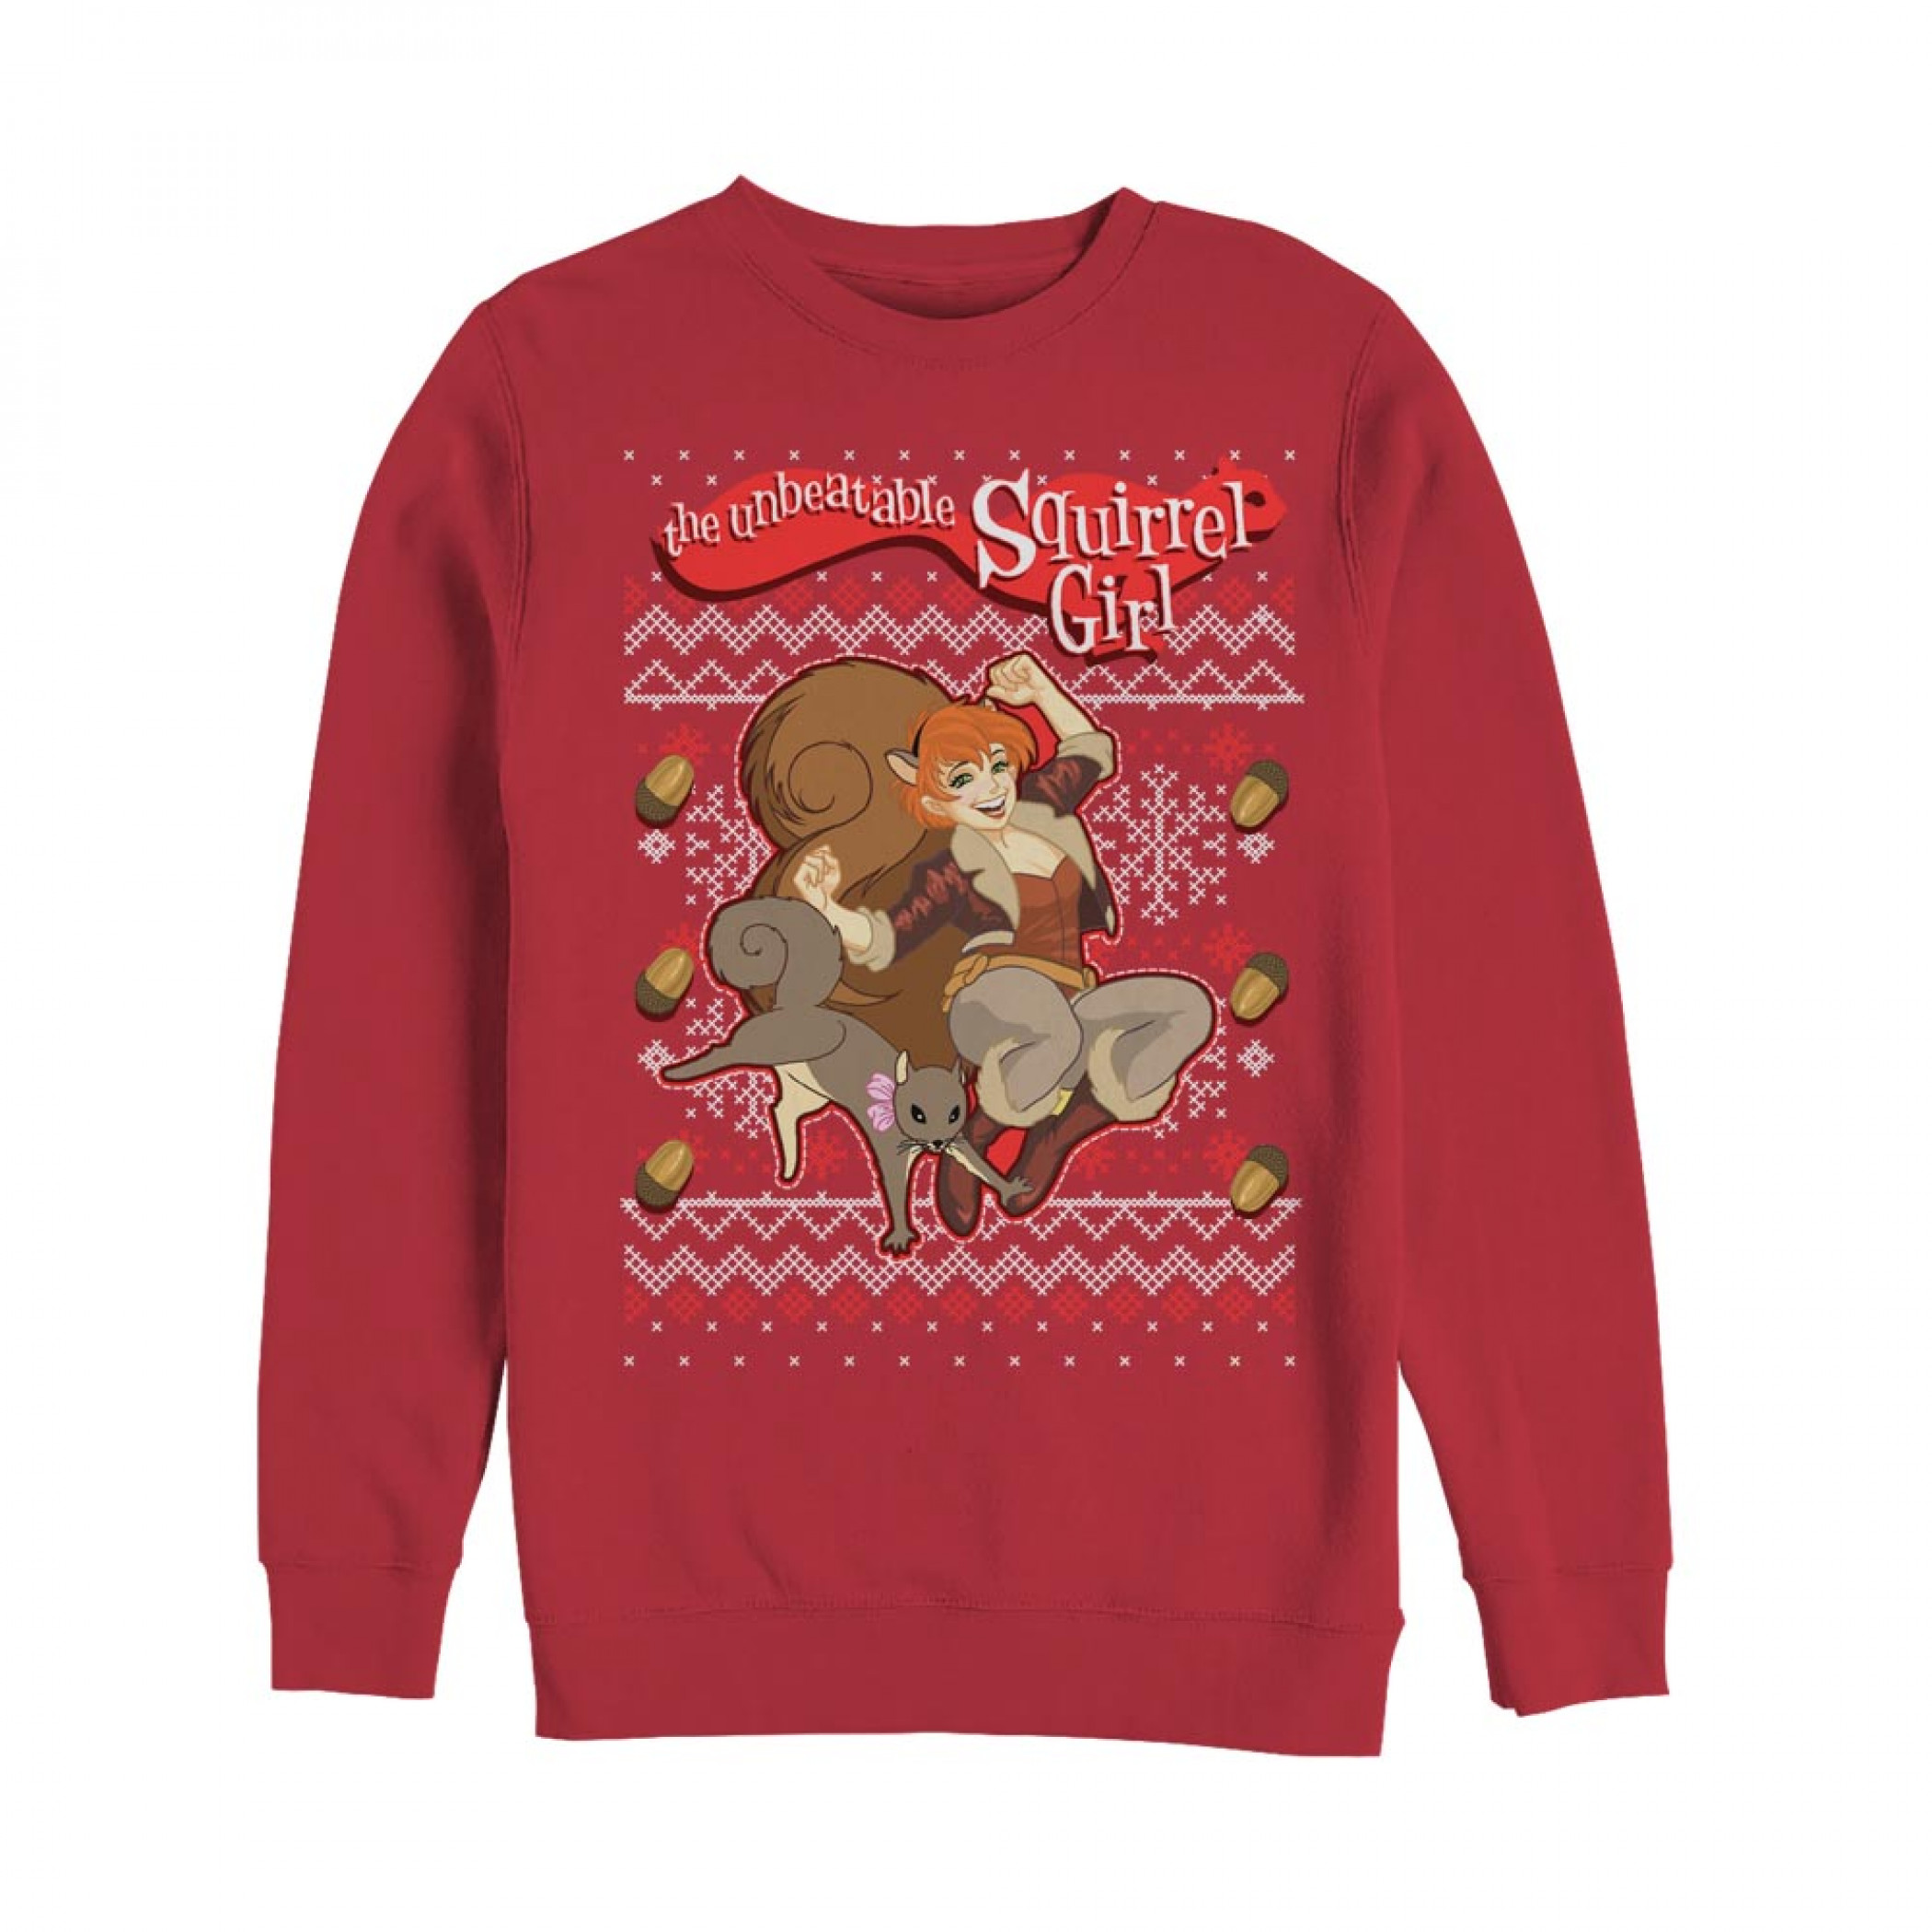 The Unbeatable Squirrel Girl Ugly Christmas Sweatshirt